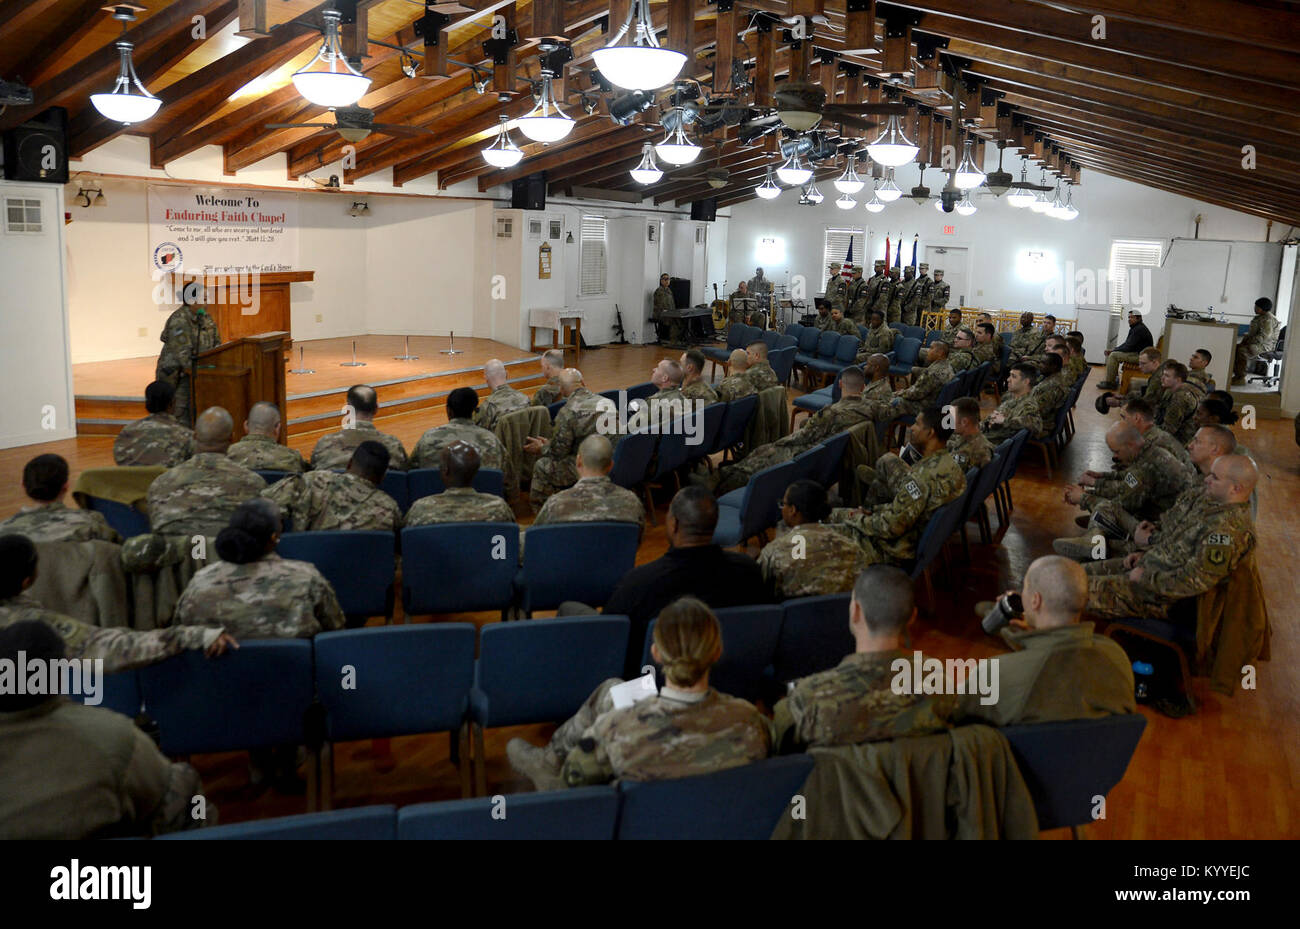 Members of Bagram Airfield gathered at the Enduring Faith Chapel to celebrate Martin Luther King Day Jan. 15, 2018 - Stock Image